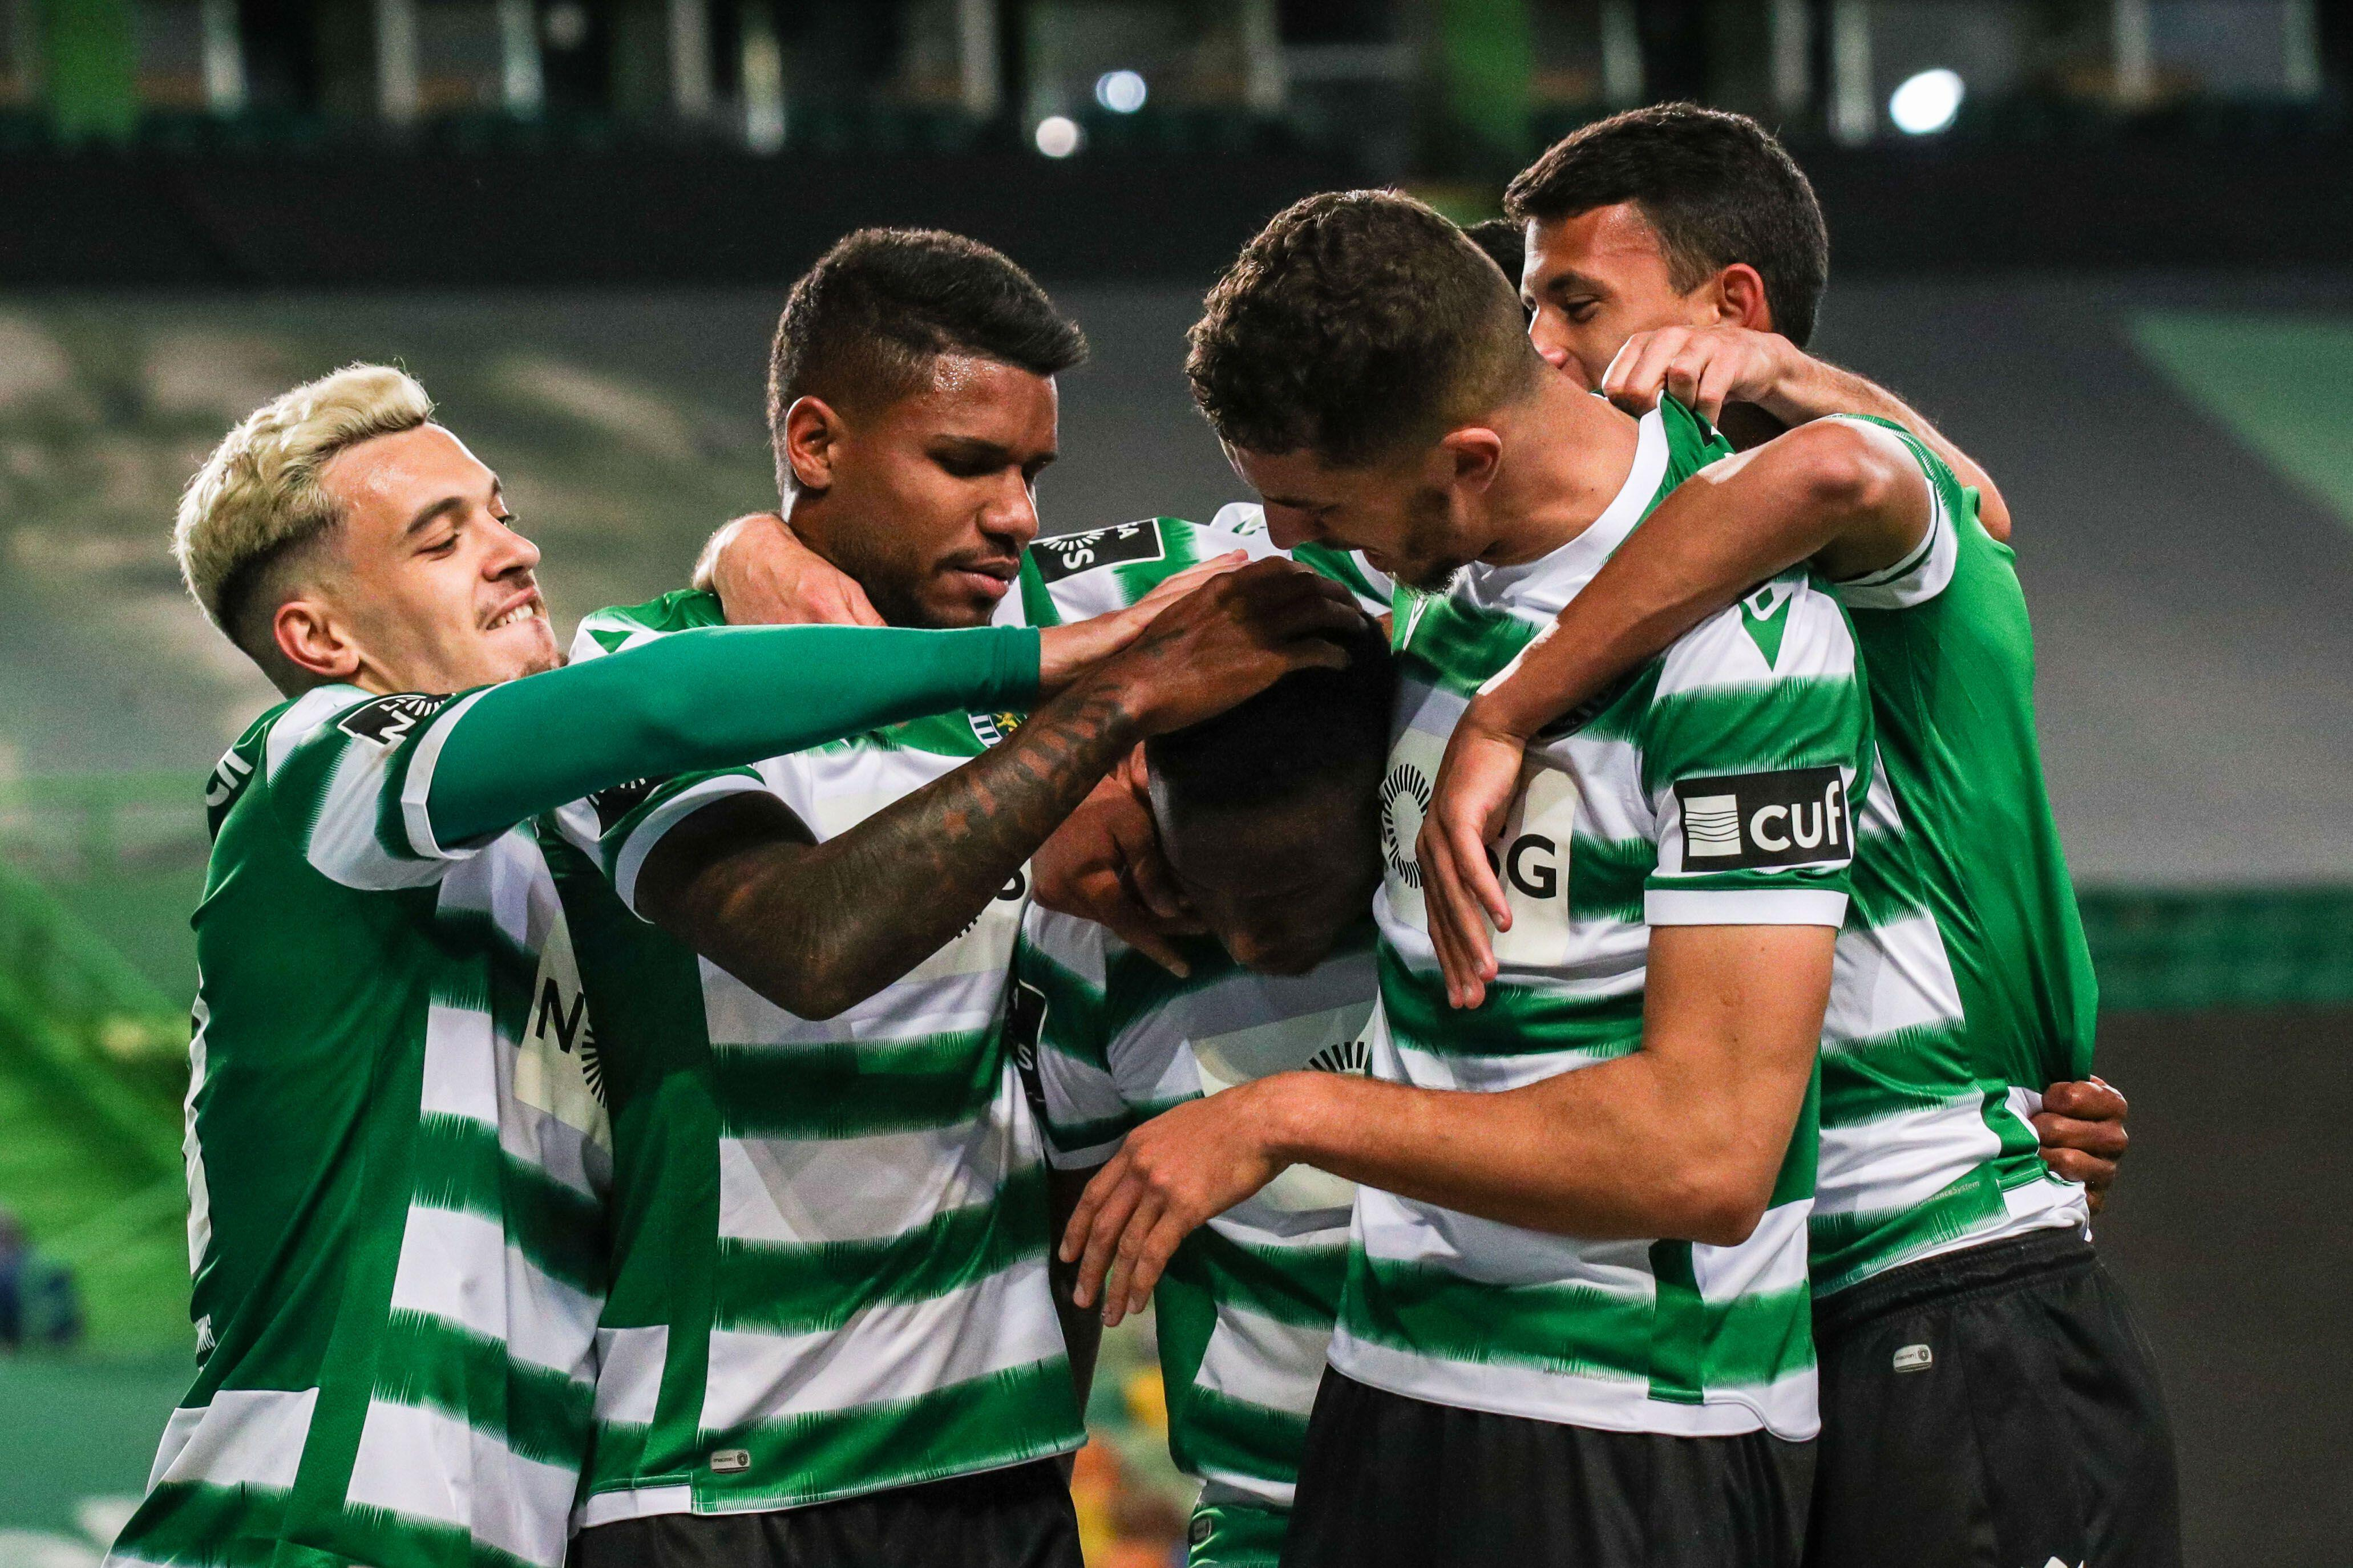 This Sporting life suddenly looks grand in Lisbon